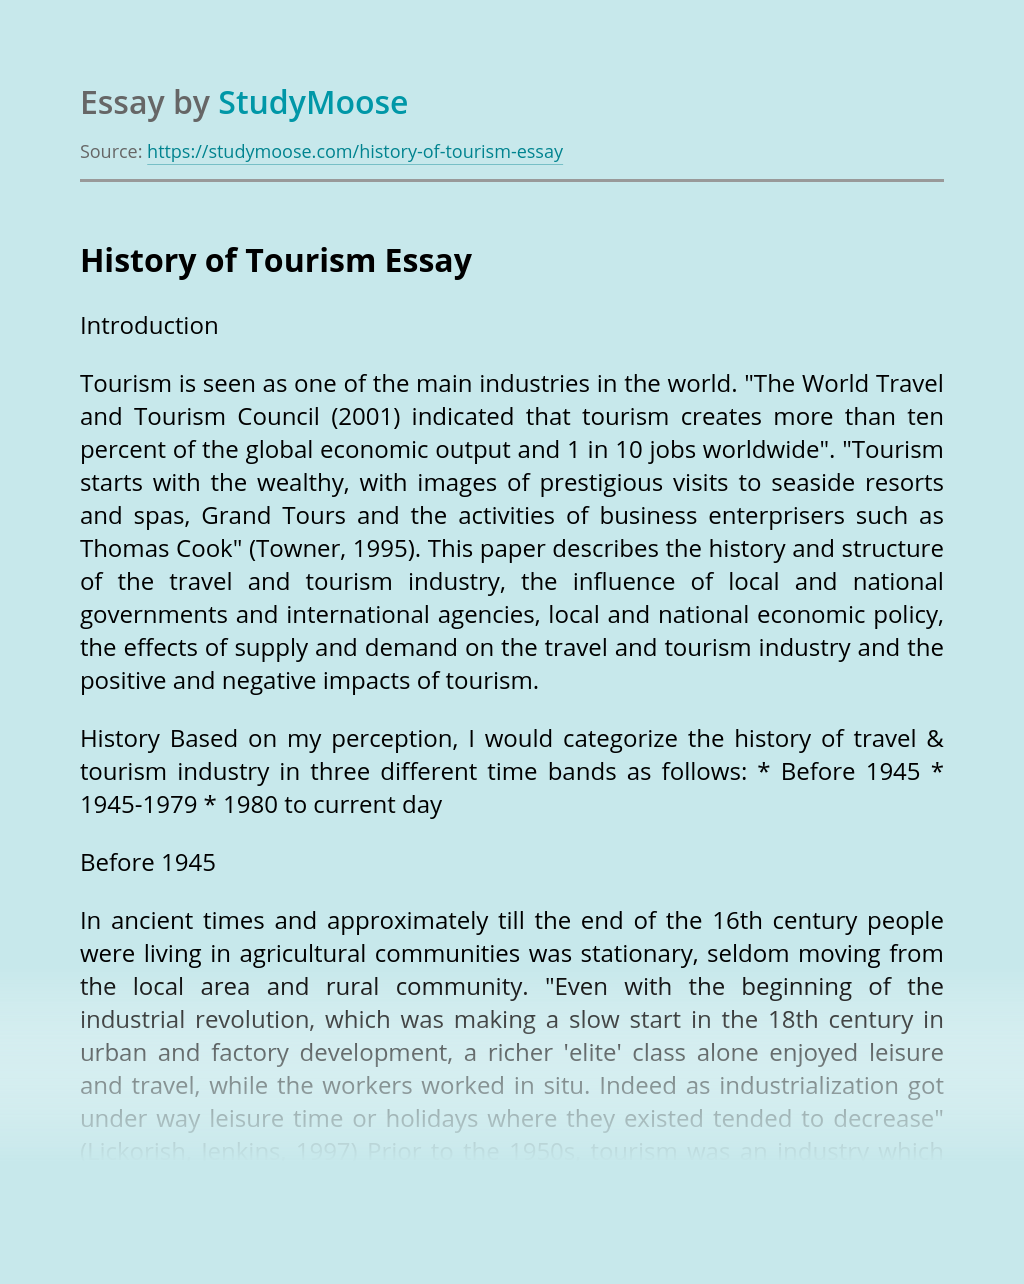 History of Tourism